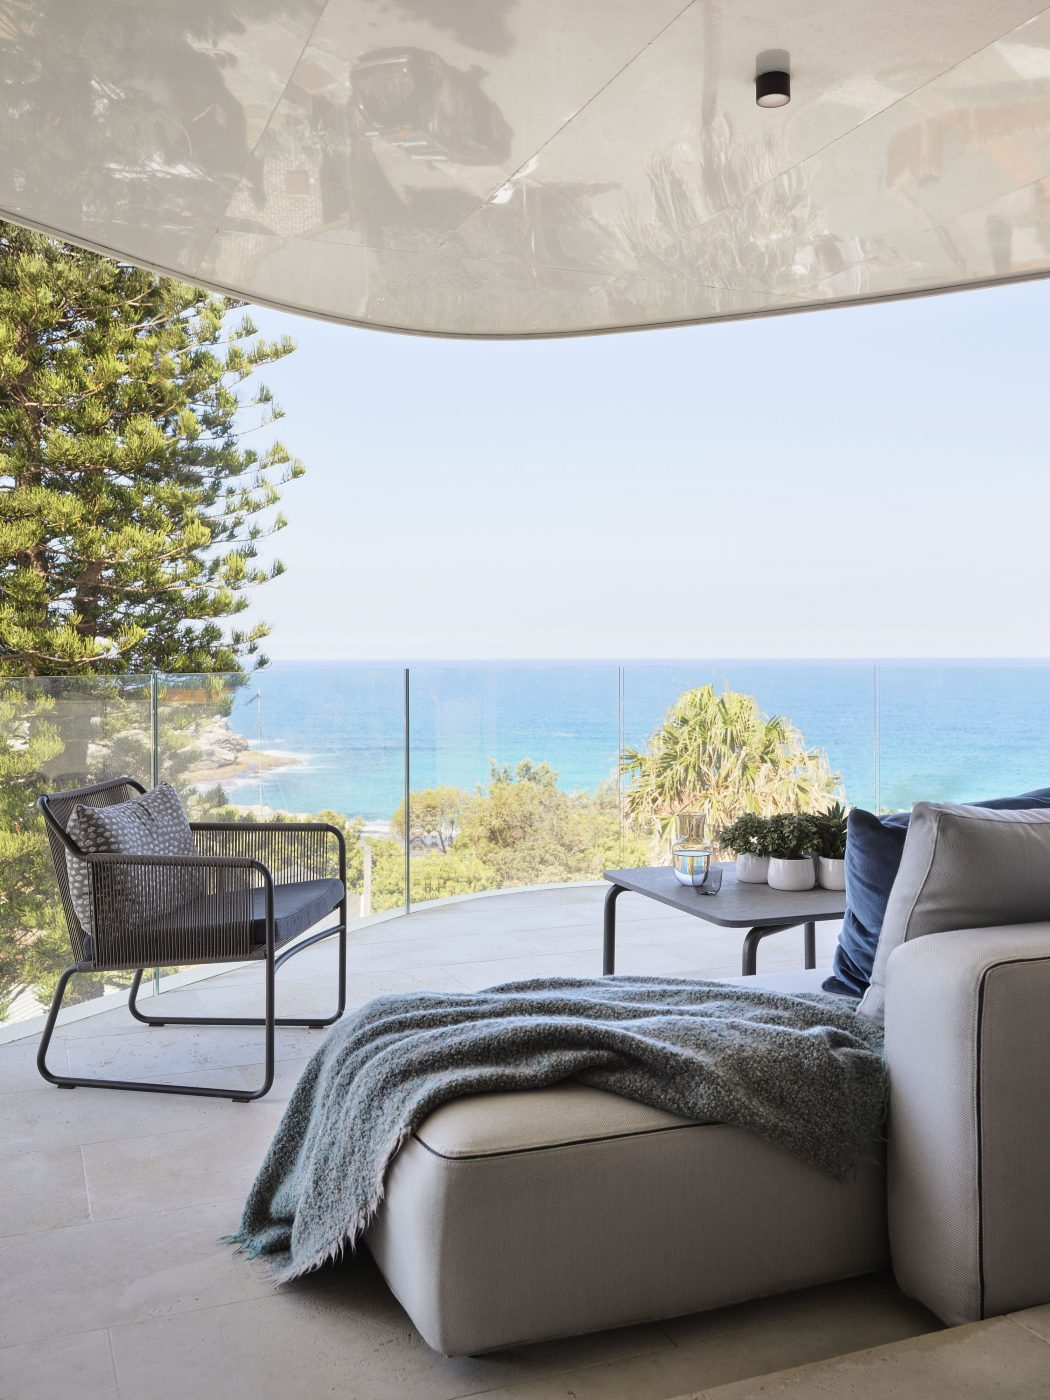 Outdoor space designed by Decus Interiors